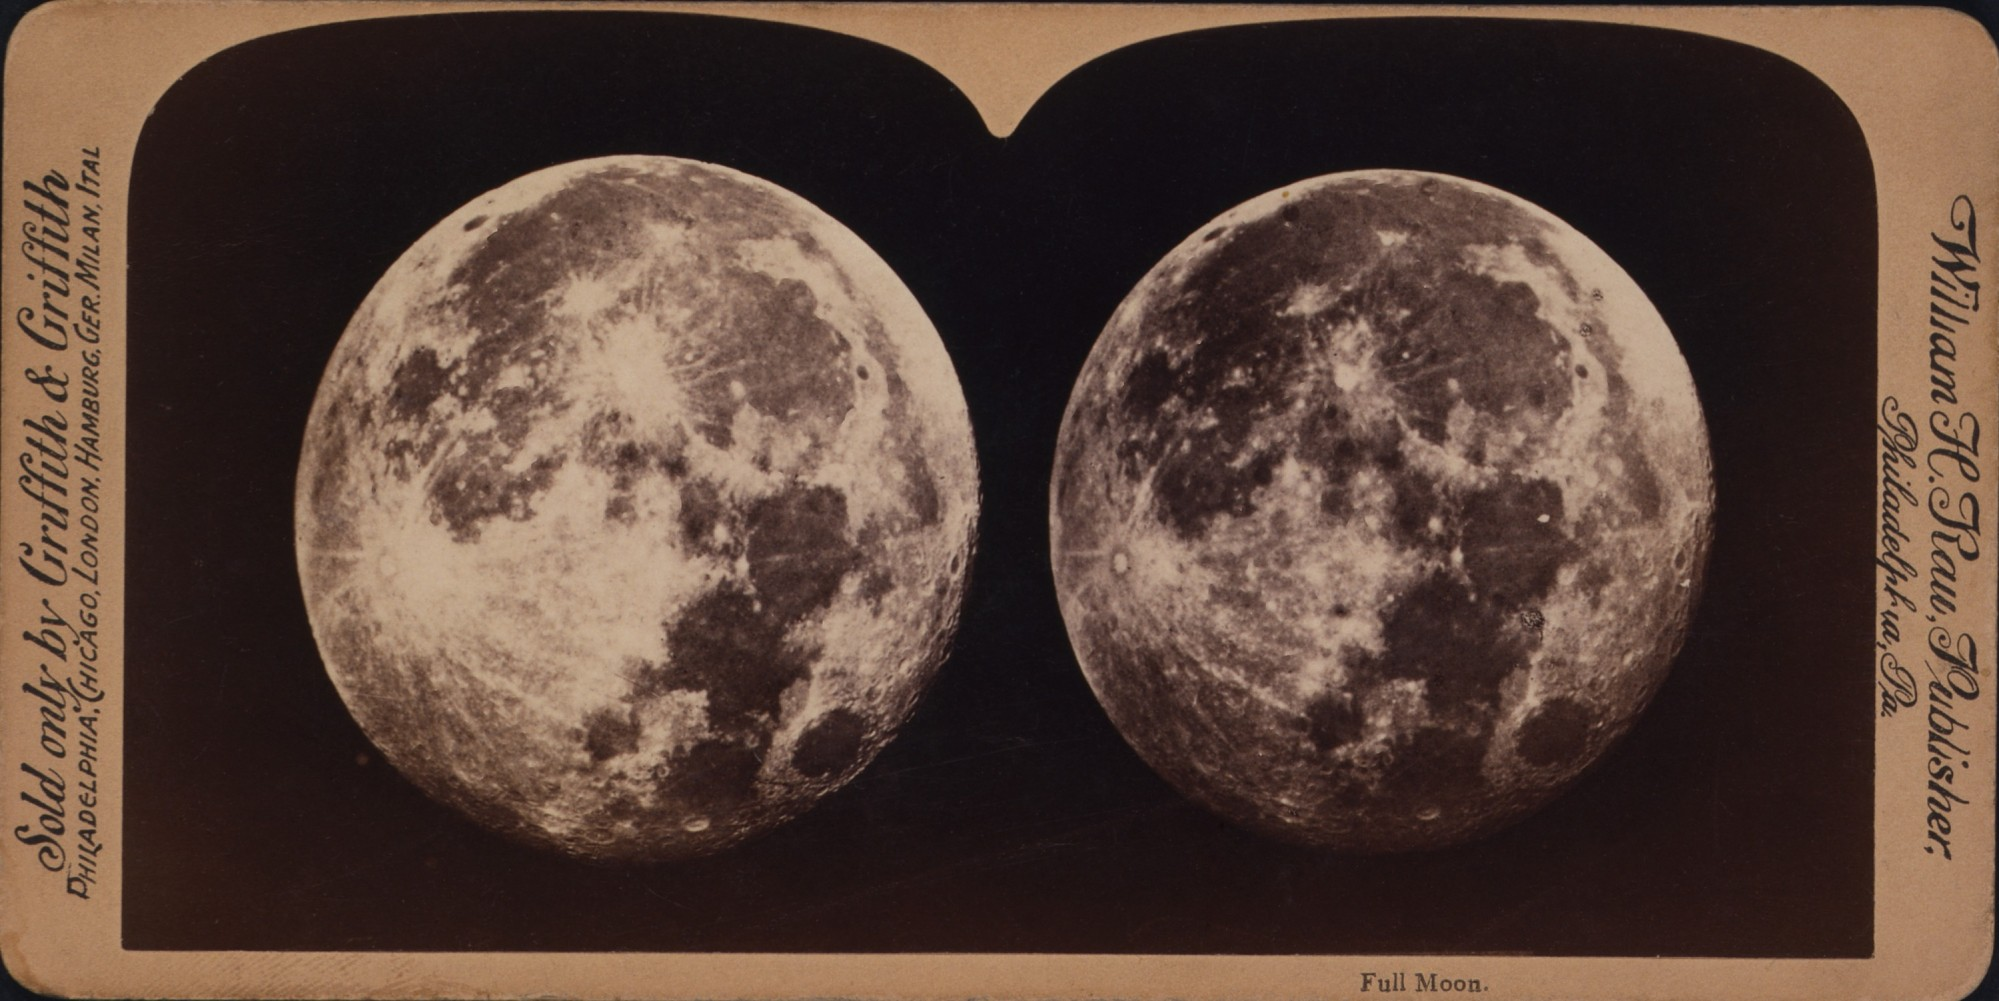 William H. Rau, Full Moon, albumen silver print mounted to stereographic card